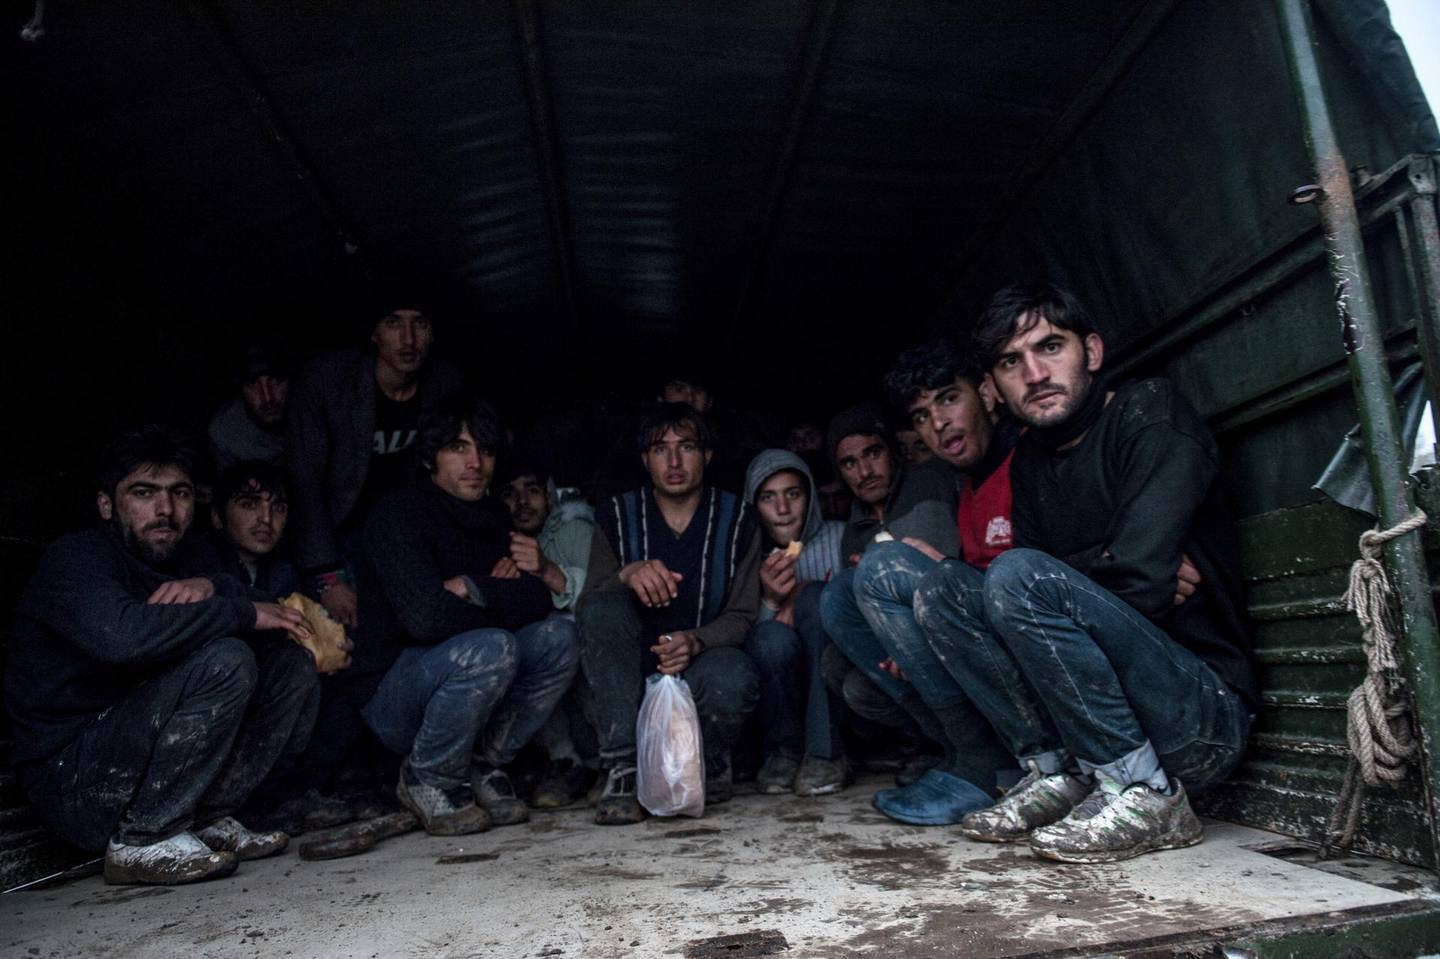 TOPSHOT - Afghan refugees collected by Turkish border army sit in the truck after being deported by Greek army officers on December 9, 2018, near Greece border in Edirne. (Photo by BULENT KILIC / AFP)